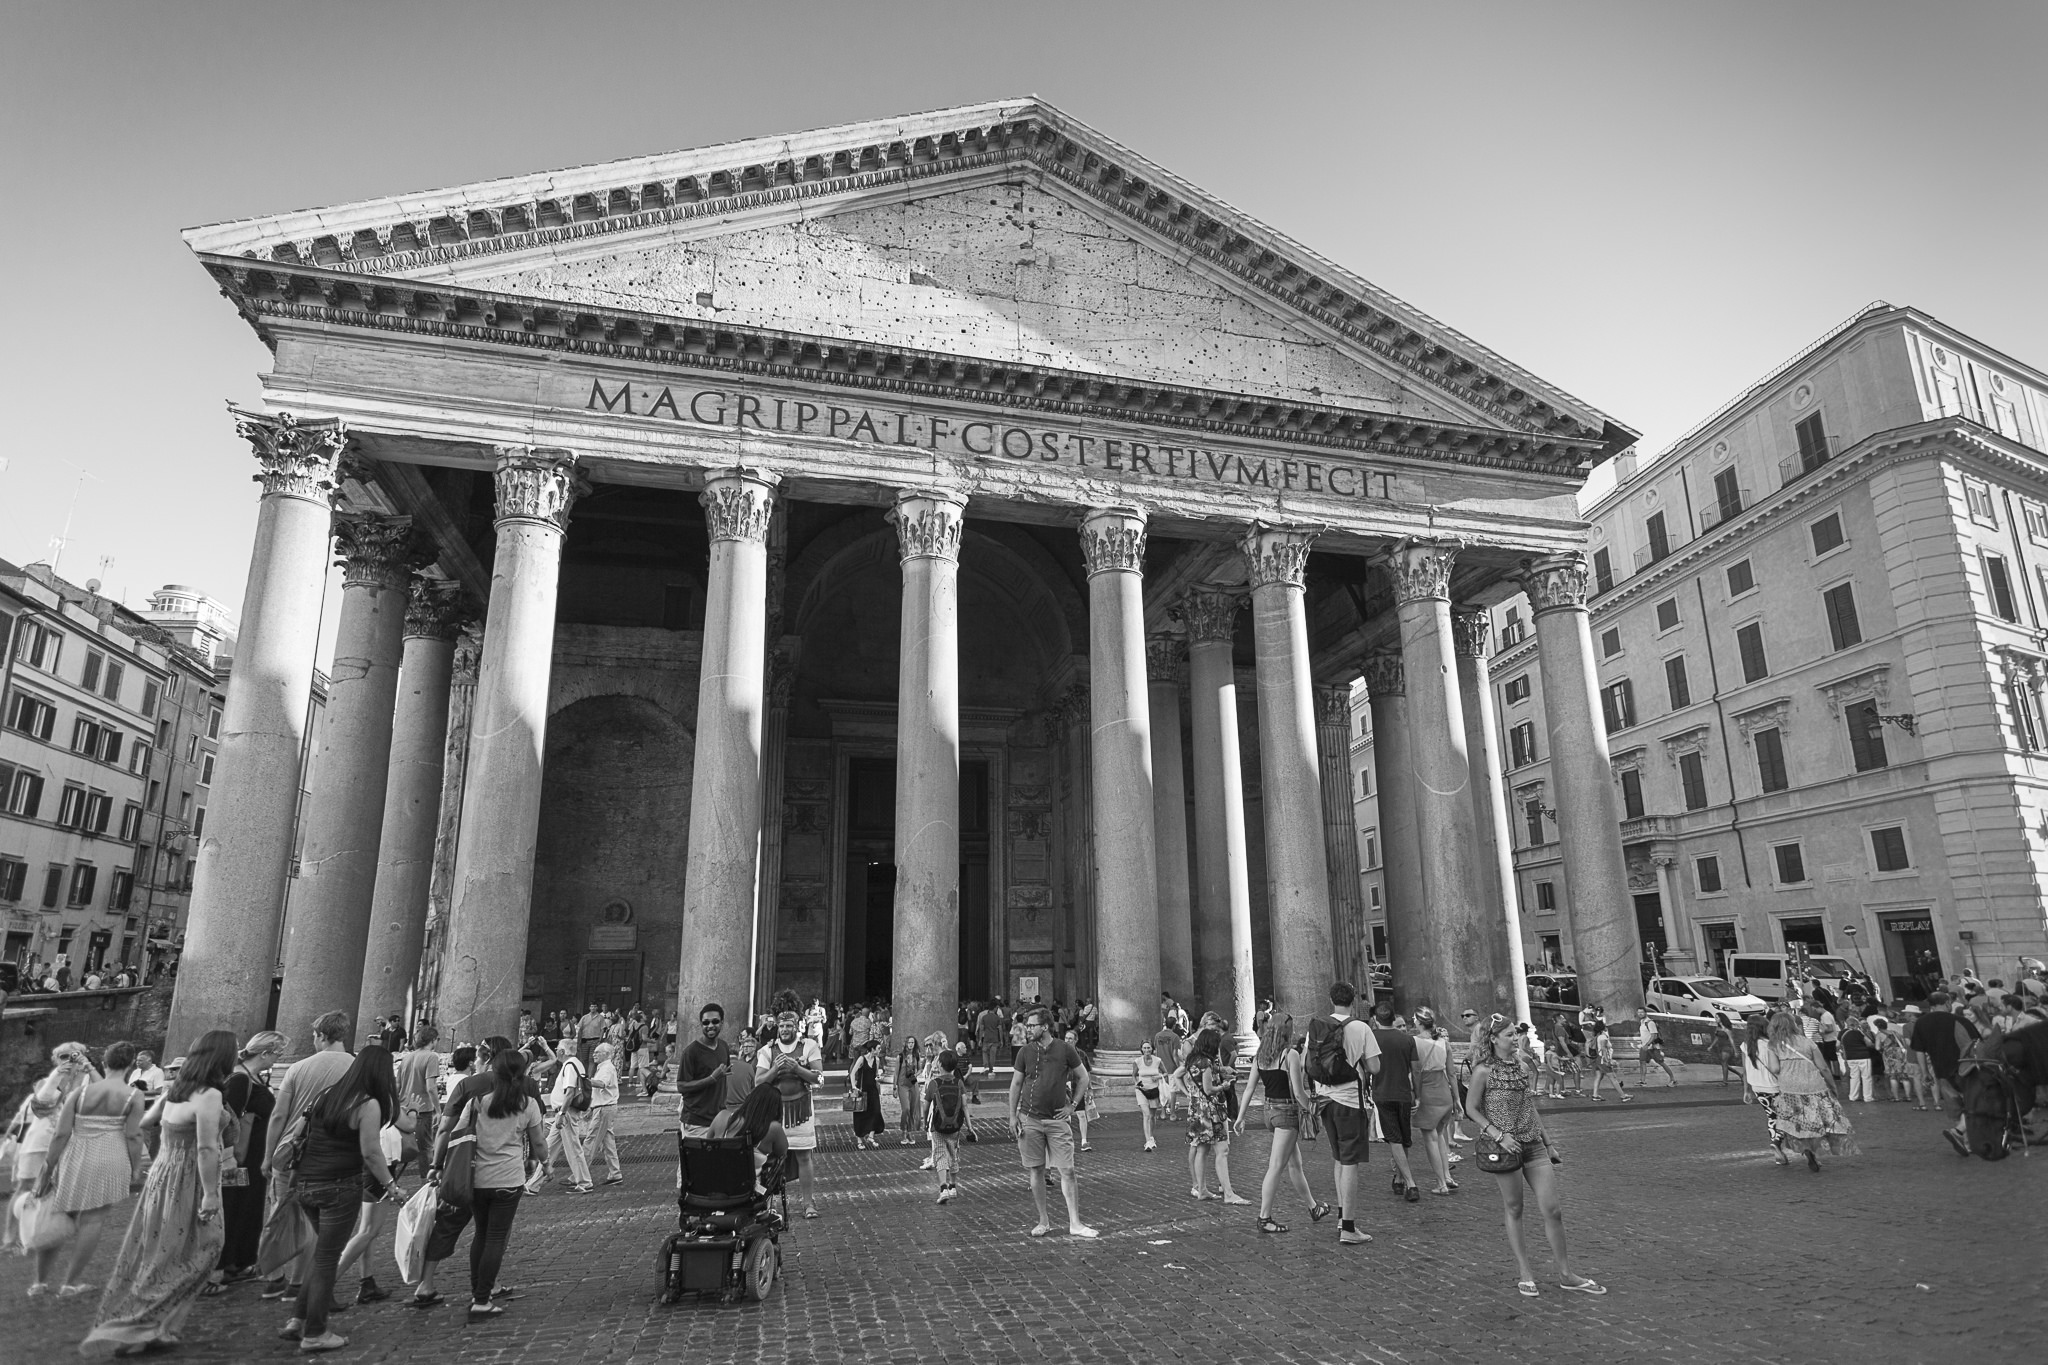 la folla del Pantheon...